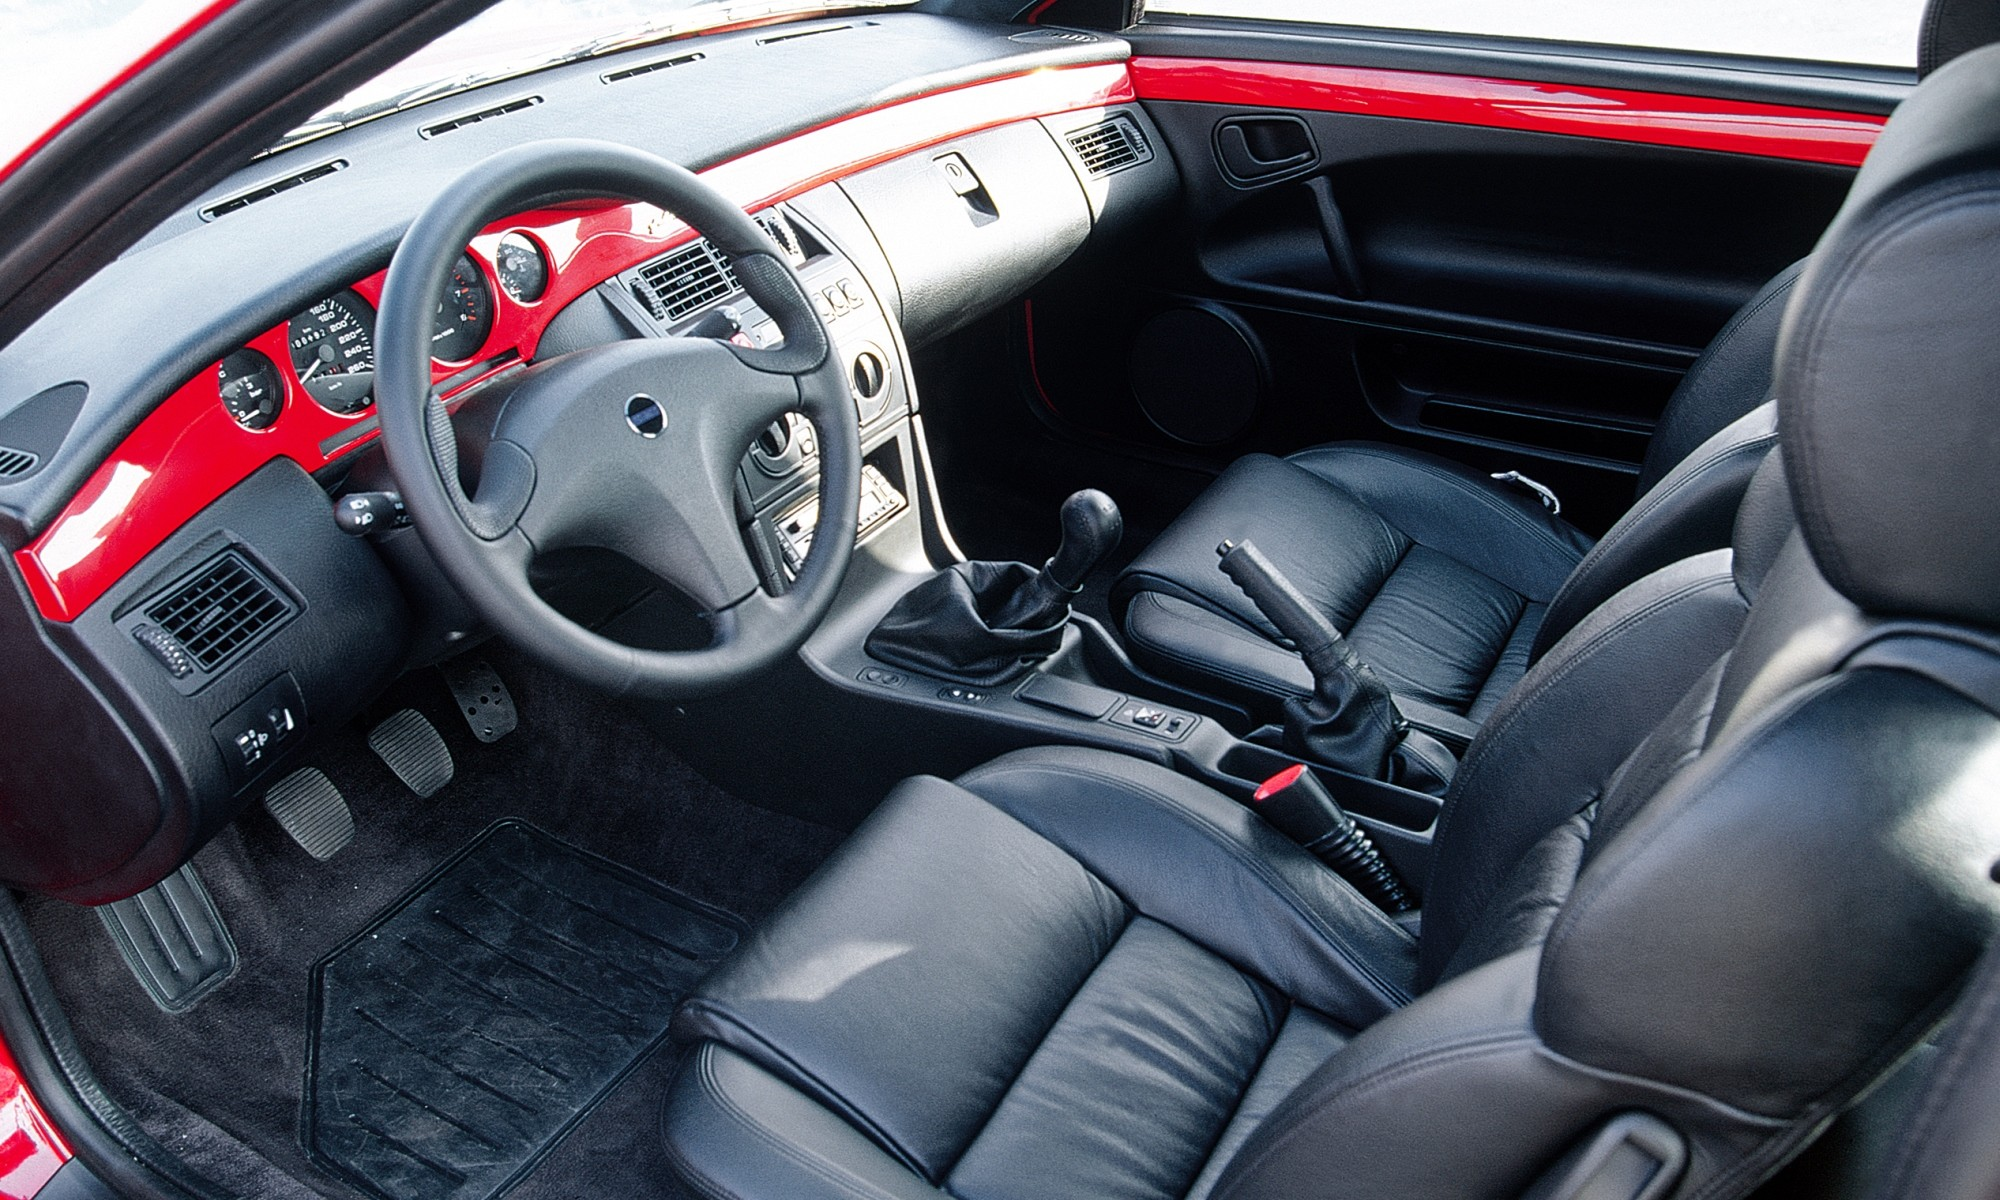 Fiat Coupe interior